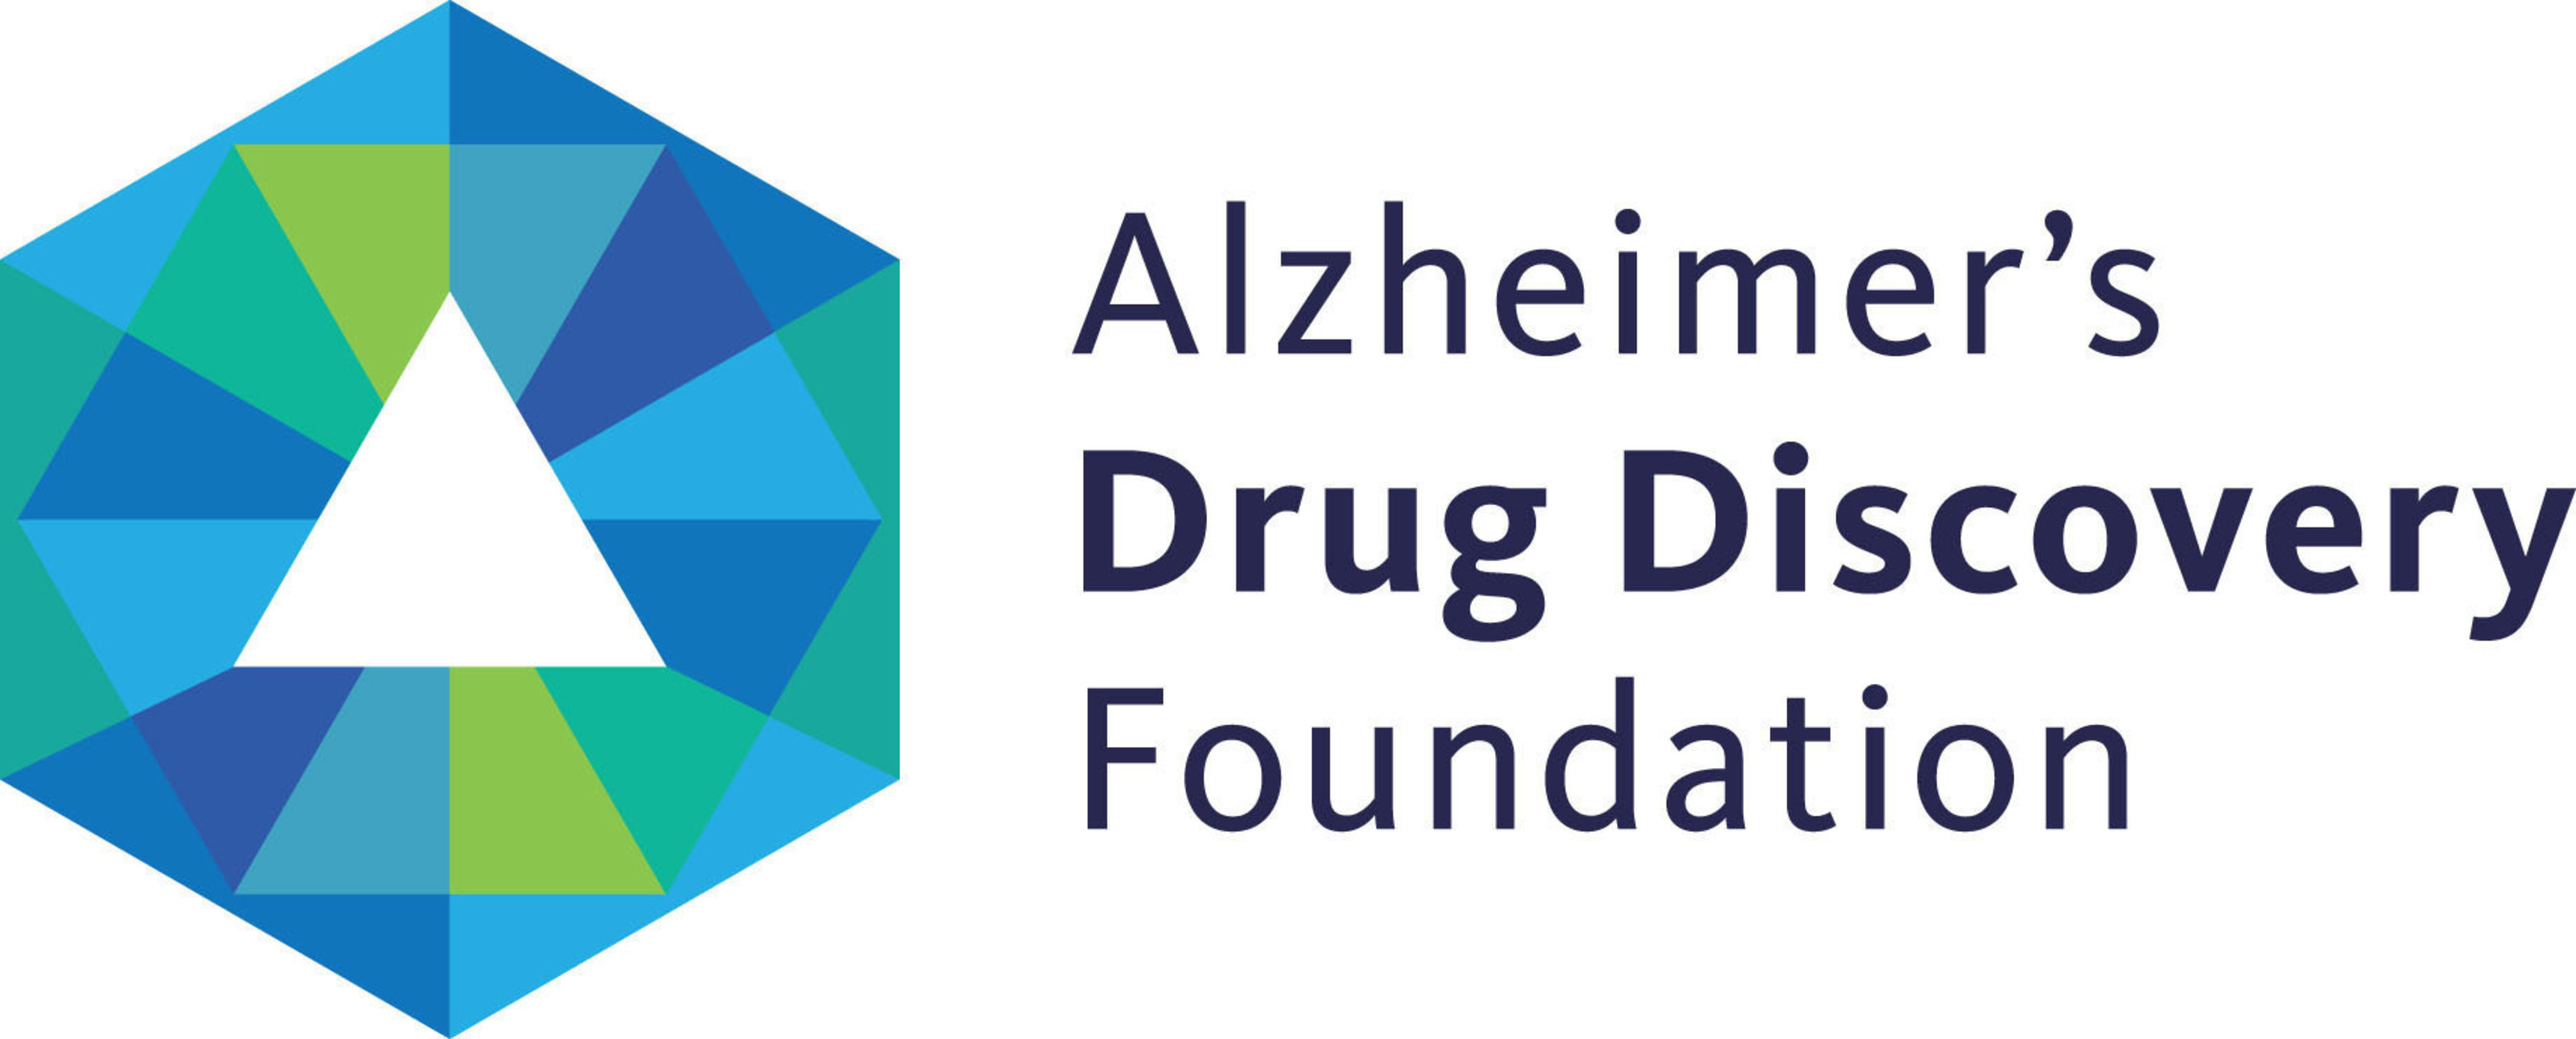 Ten New Grants Support Alzheimer's Drug Discovery And